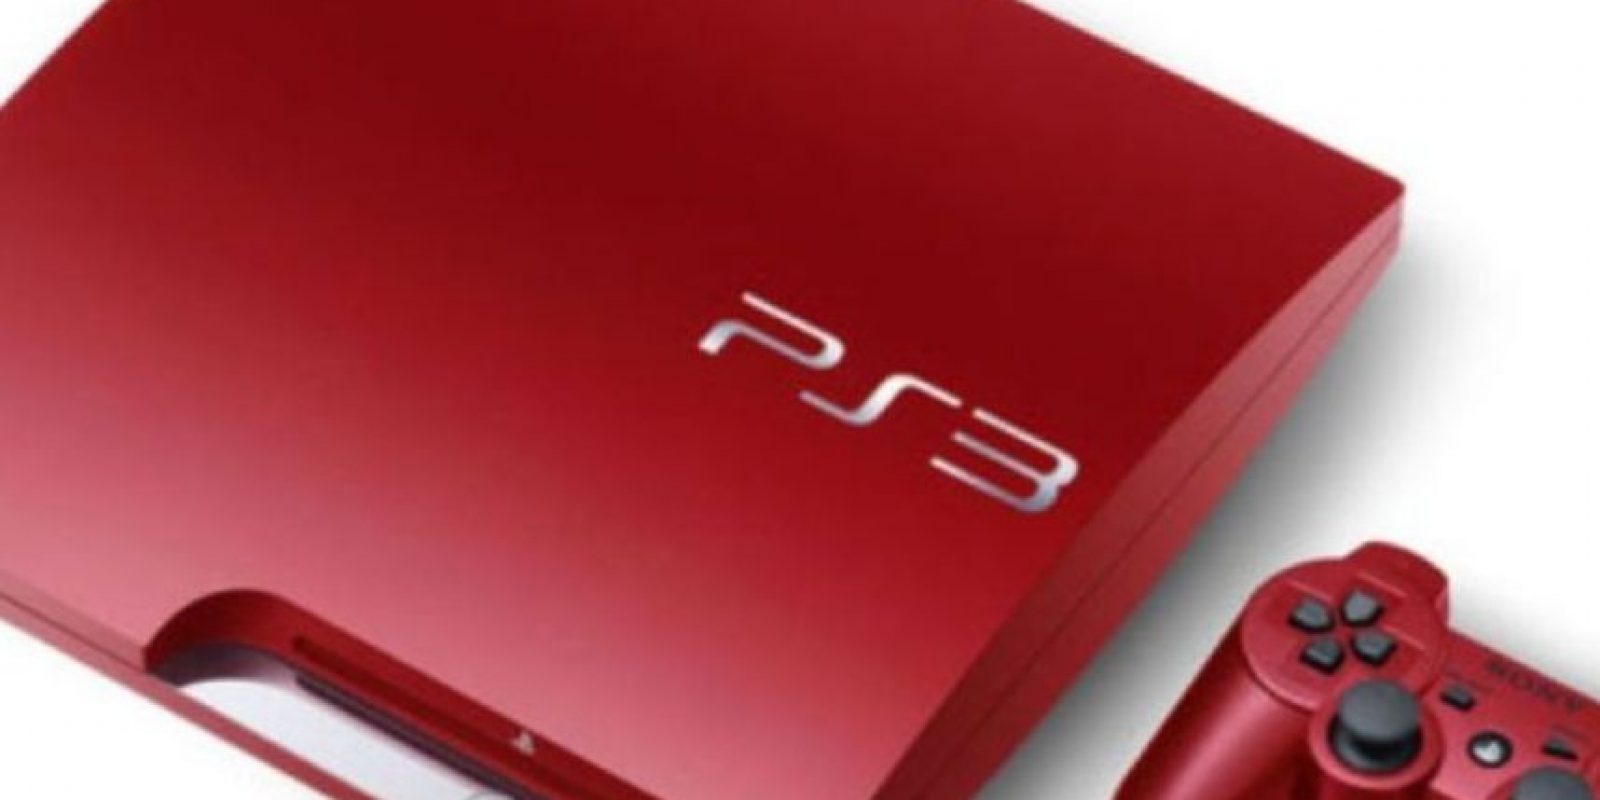 PlayStation 3 Slim rojo. Foto: Sony